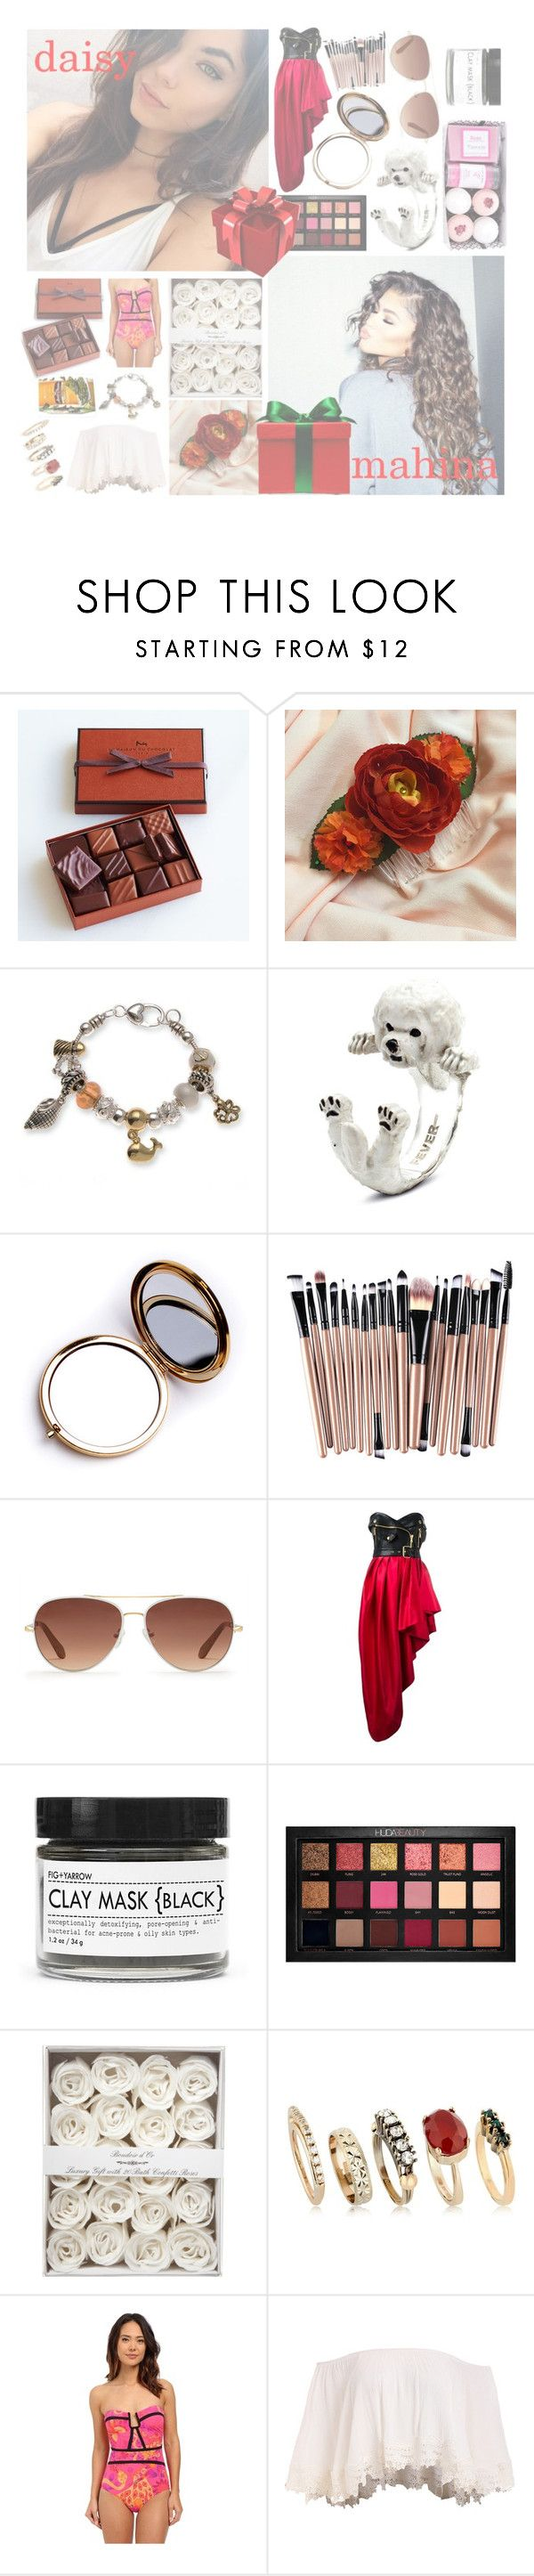 """""""{ christmas gifts } enrique"""" by madness-anxns ❤ liked on Polyvore featuring La Maison Du Chocolat, Kim Rogers, Odeme, Stella & Dot, Moschino, Fig+Yarrow, Huda Beauty, Iosselliani, Nanette Lepore and Coleman"""